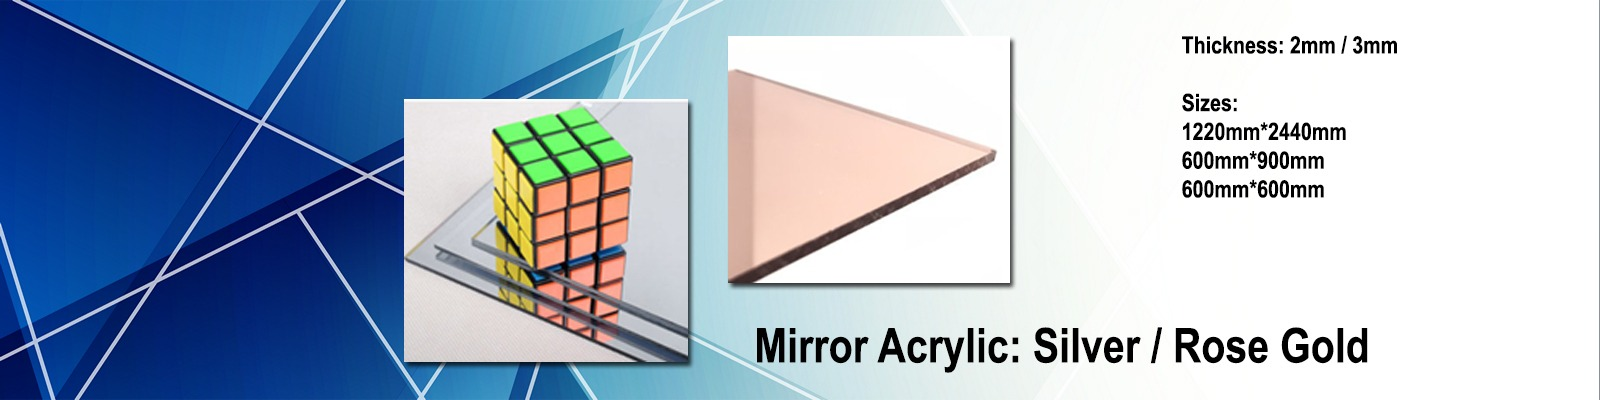 Acrylic Mirror by iPlastics